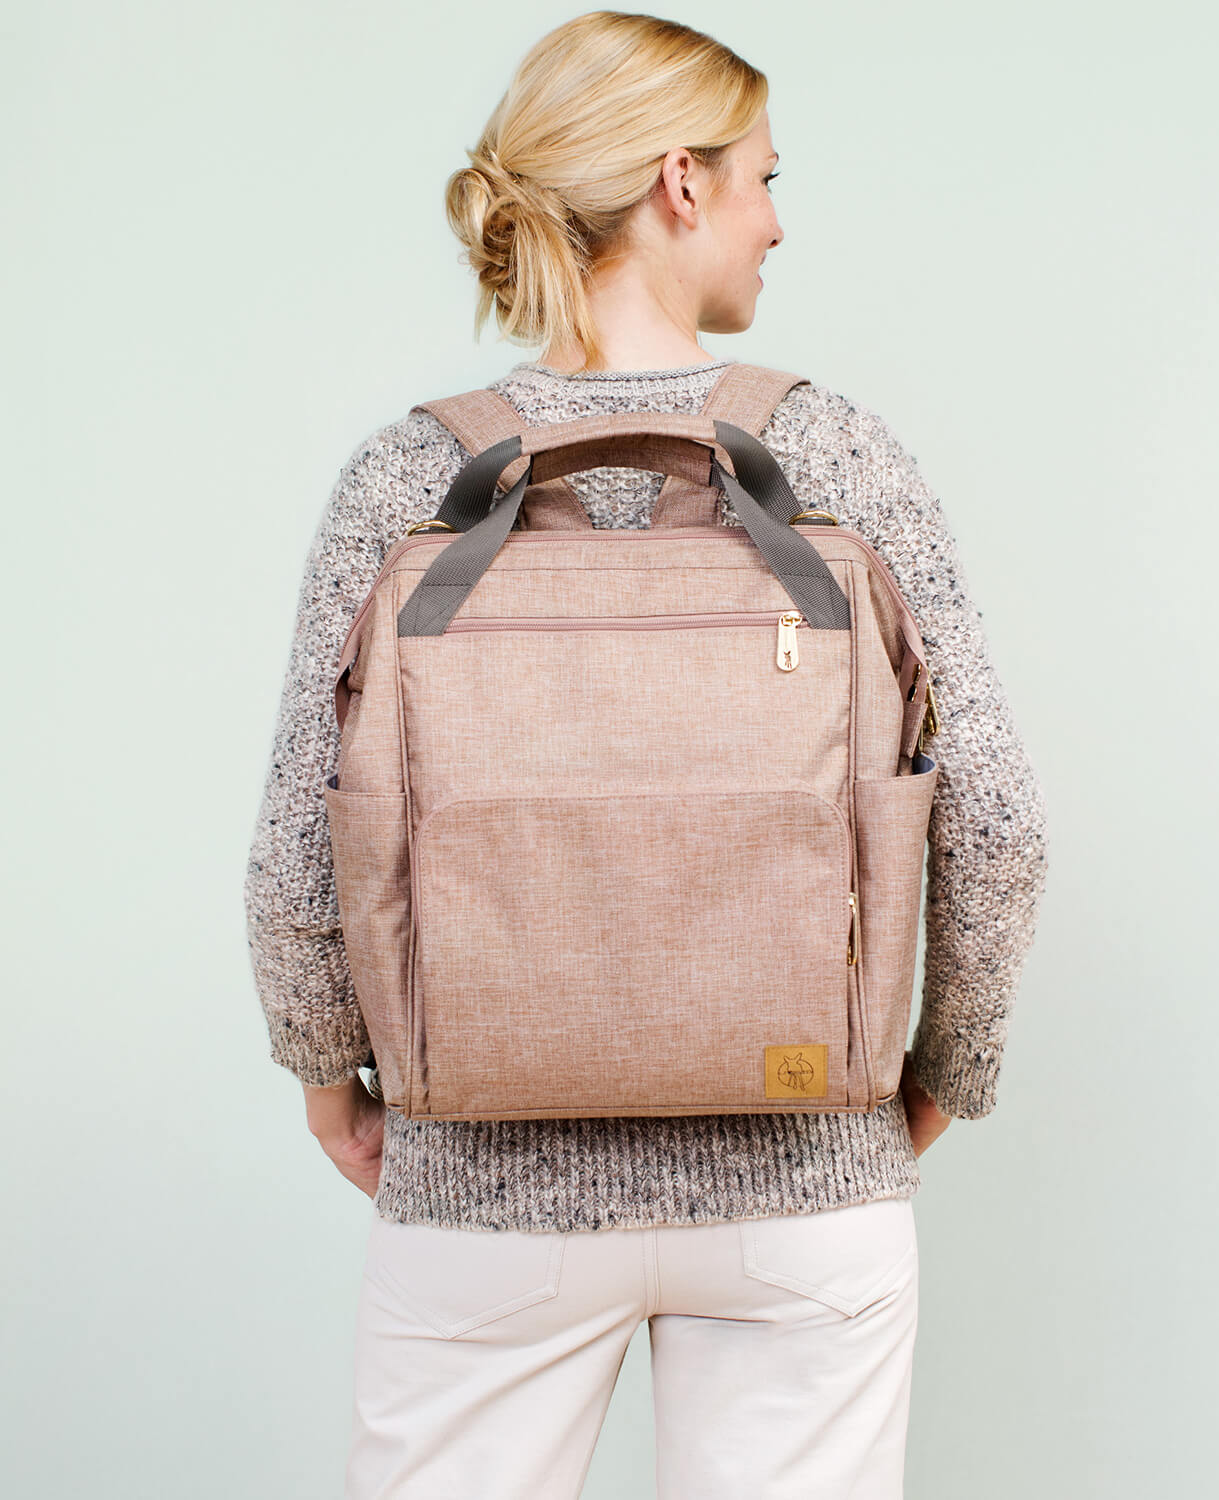 Lässig Glam Goldie : l ssig babybackpack glam goldie backpack rose ~ Orissabook.com Haus und Dekorationen